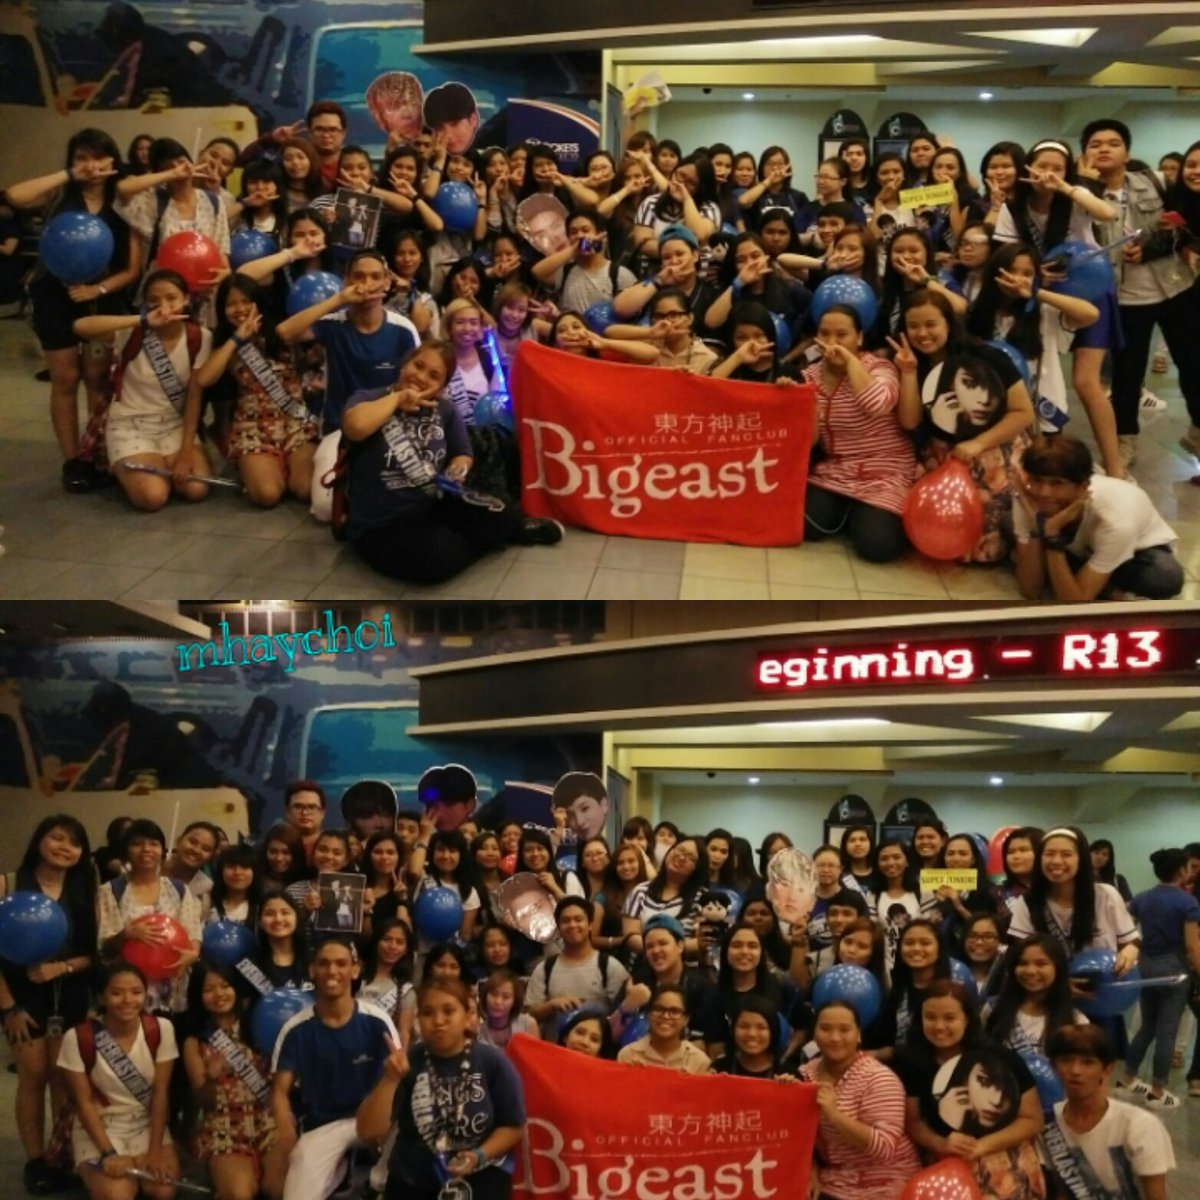 SMTOWN FEST Event in the PH. ELF and CASSIE are united... Pepsi Fandom is so Amazing ♥♥♥ #SMTF https://t.co/Brp8lEVH7k